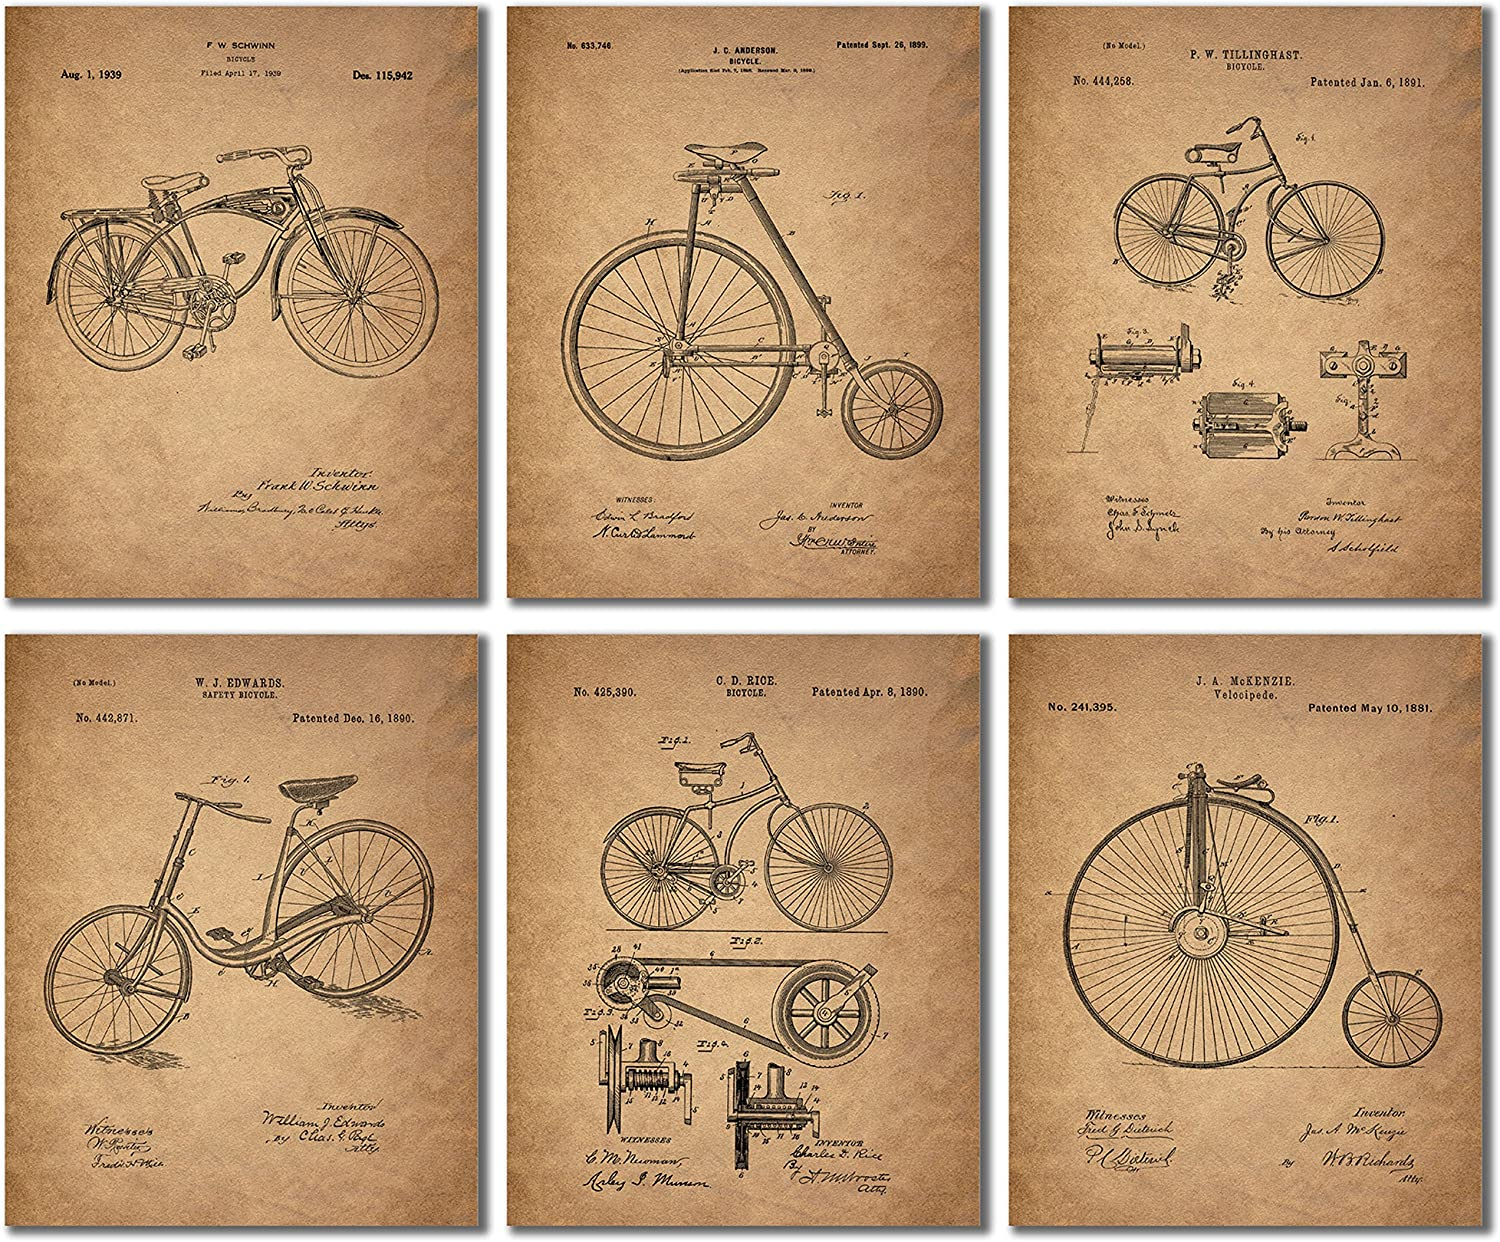 Bike Decor Vintage Bicycle Patent Wall Art Prints Cyclist Cycling Gifts 8x10 Set of 6